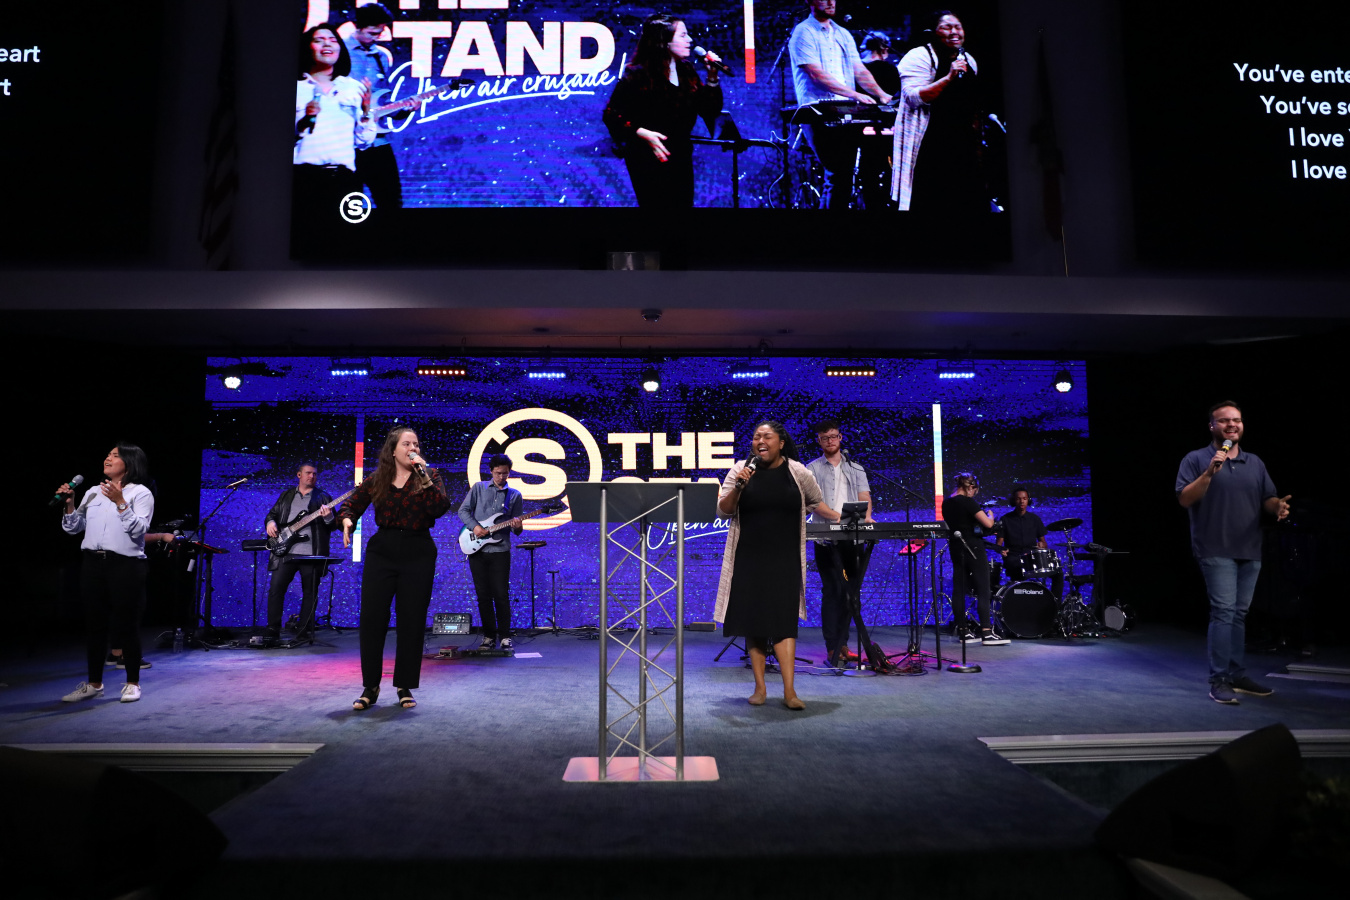 The Stand 20: Night 480